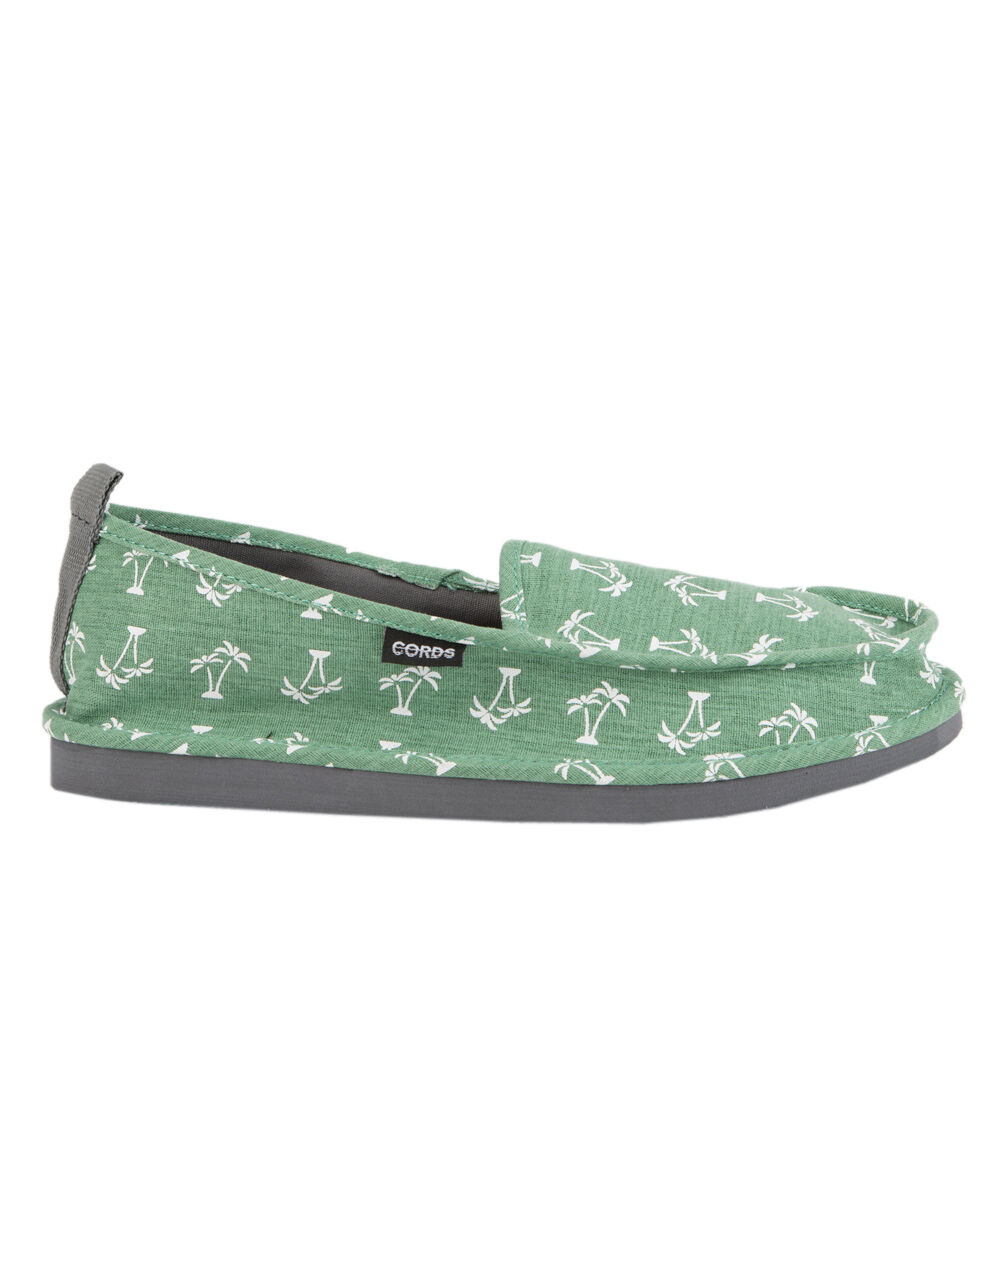 Image of CORDS DRAPER DECONSTRUCTED GREEN SLIPPERS